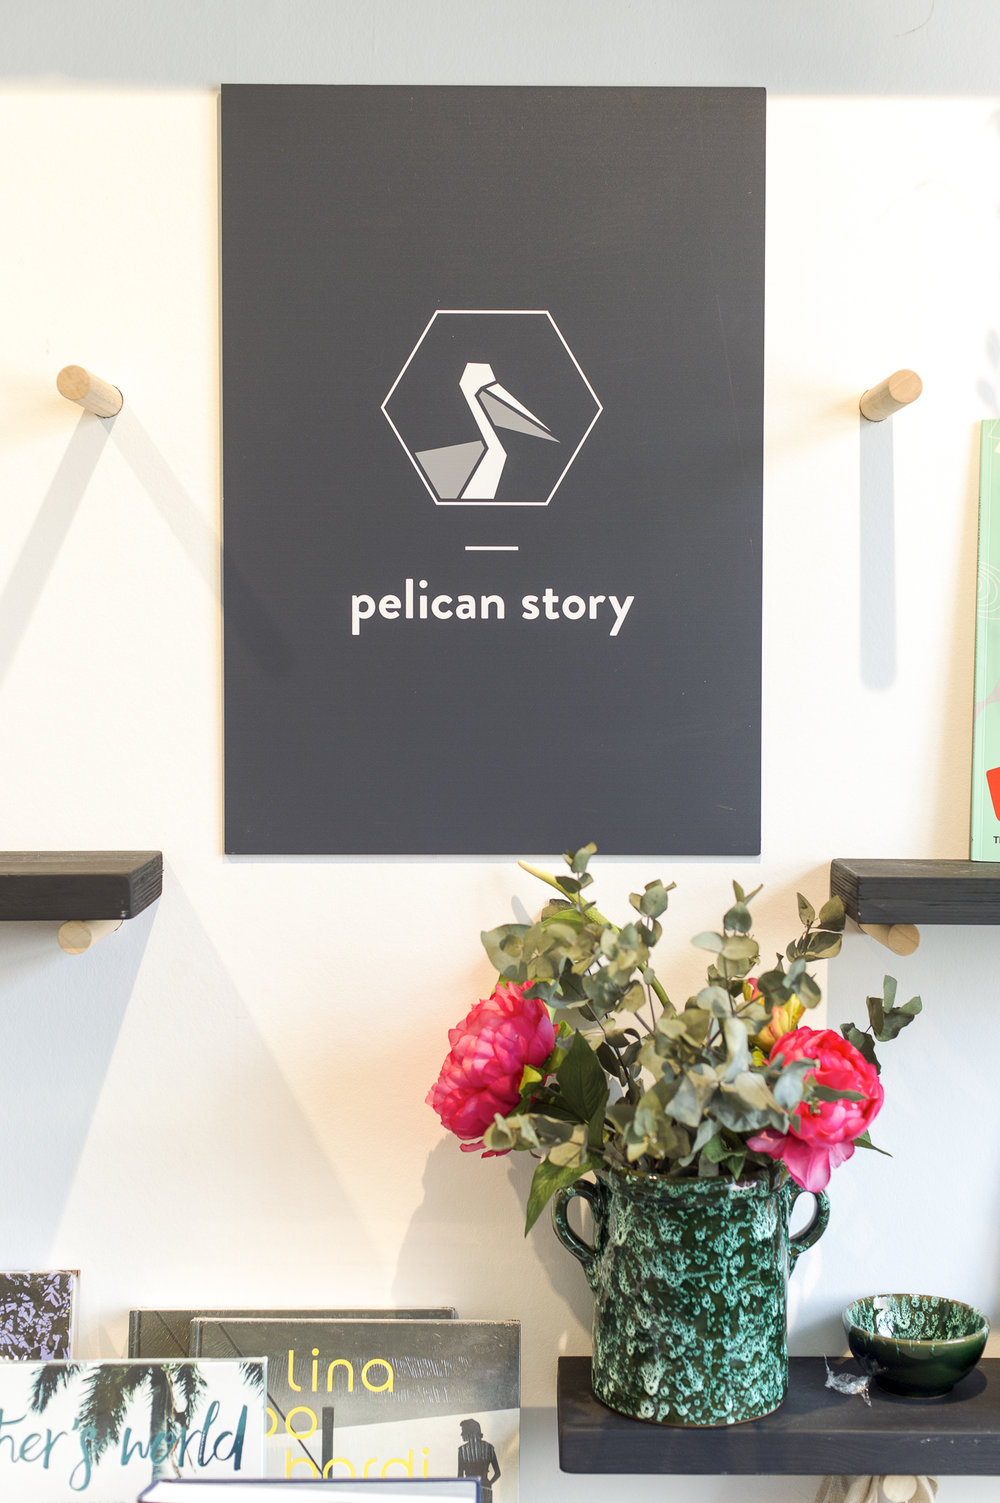 Pelican Story pop up at Kreativ House London